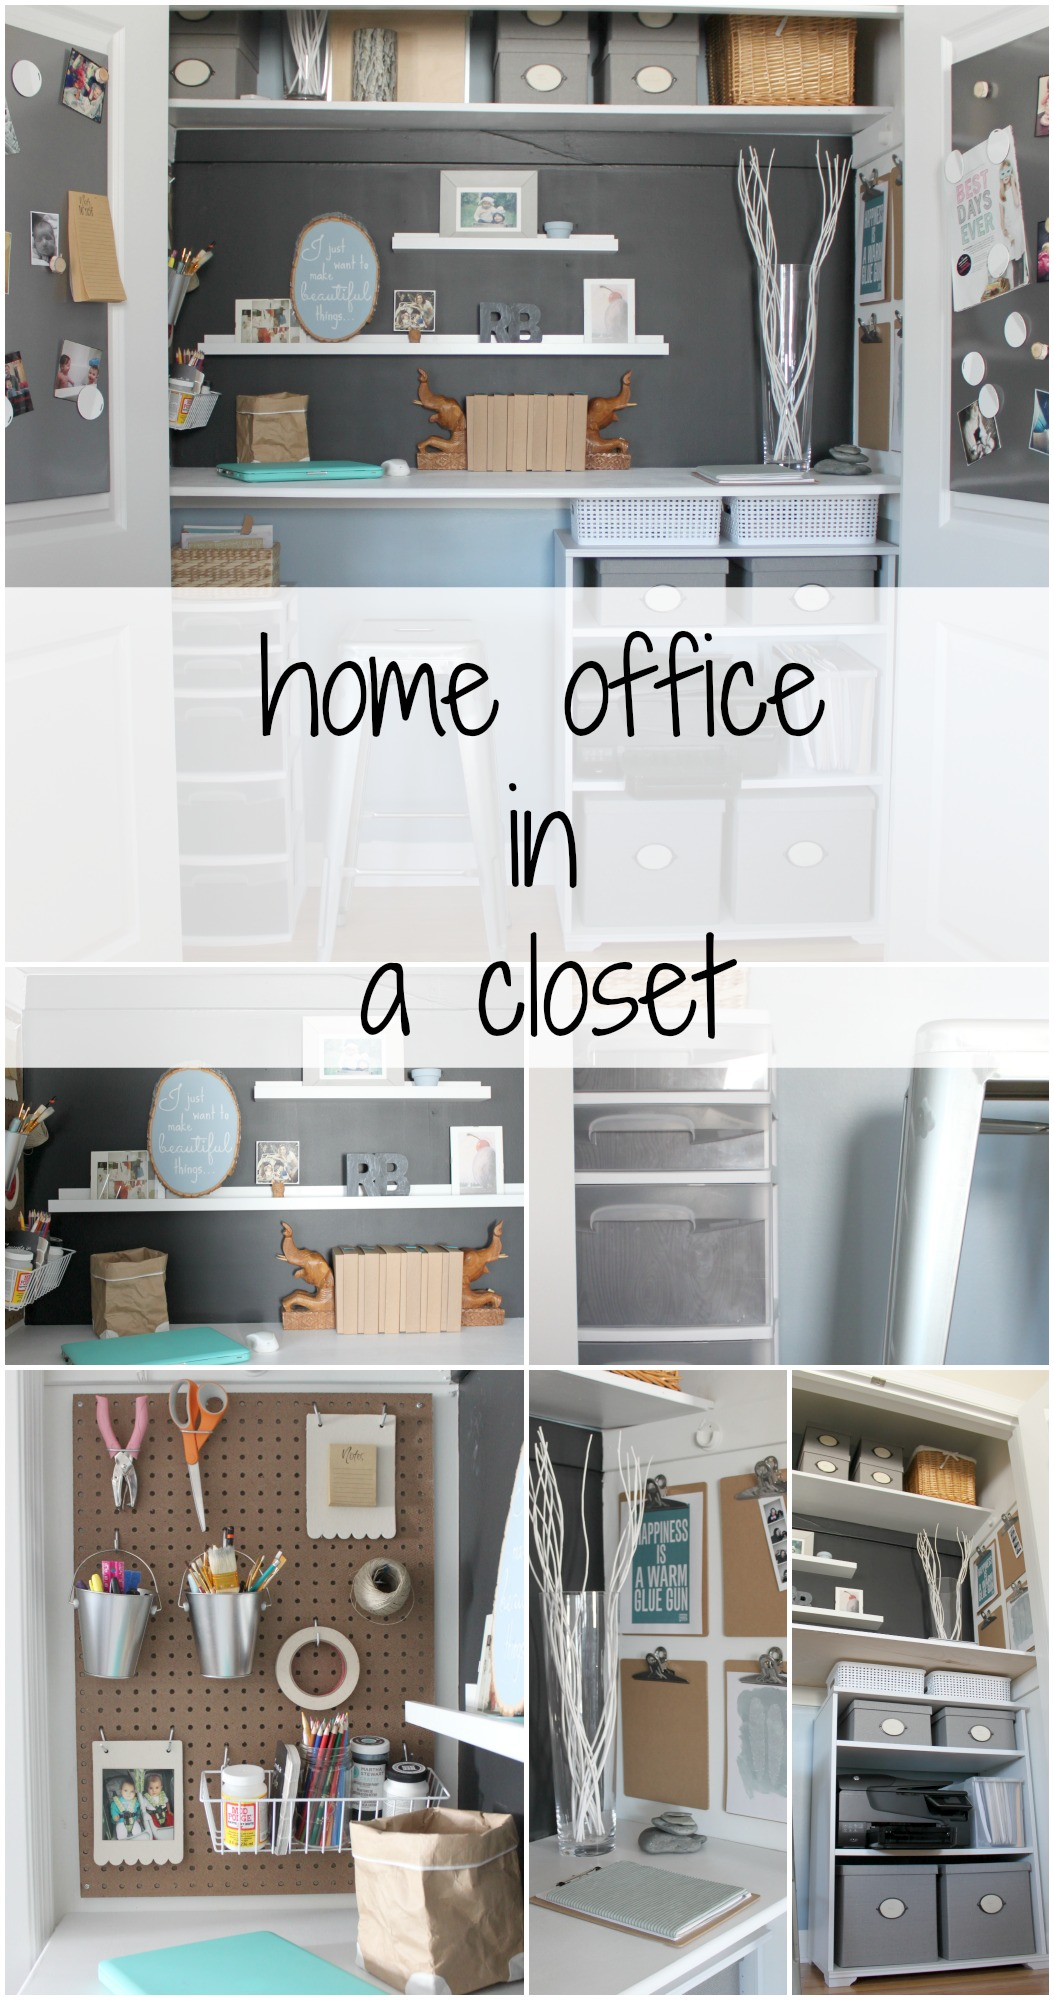 home office in a closet. Home Office In A Closet Tour - The Crazy Craft Lady